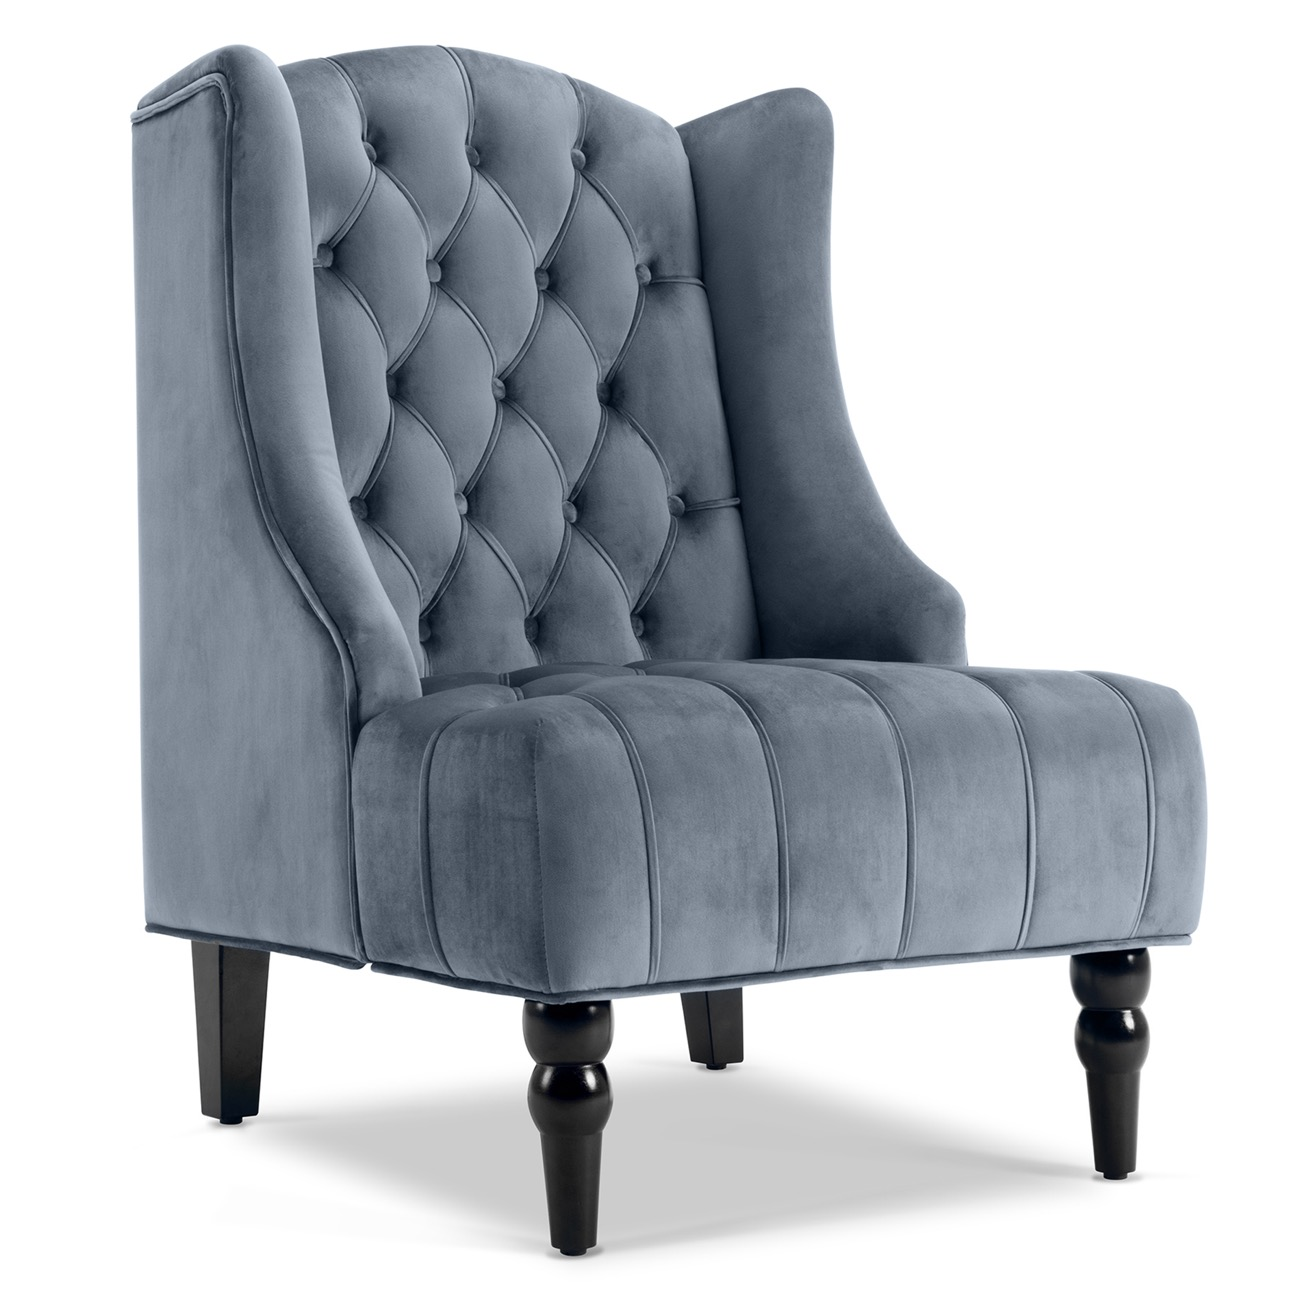 Details About Wingback Accent Chair Tall High Back Living Room Tufted Nailhead Gray Beige